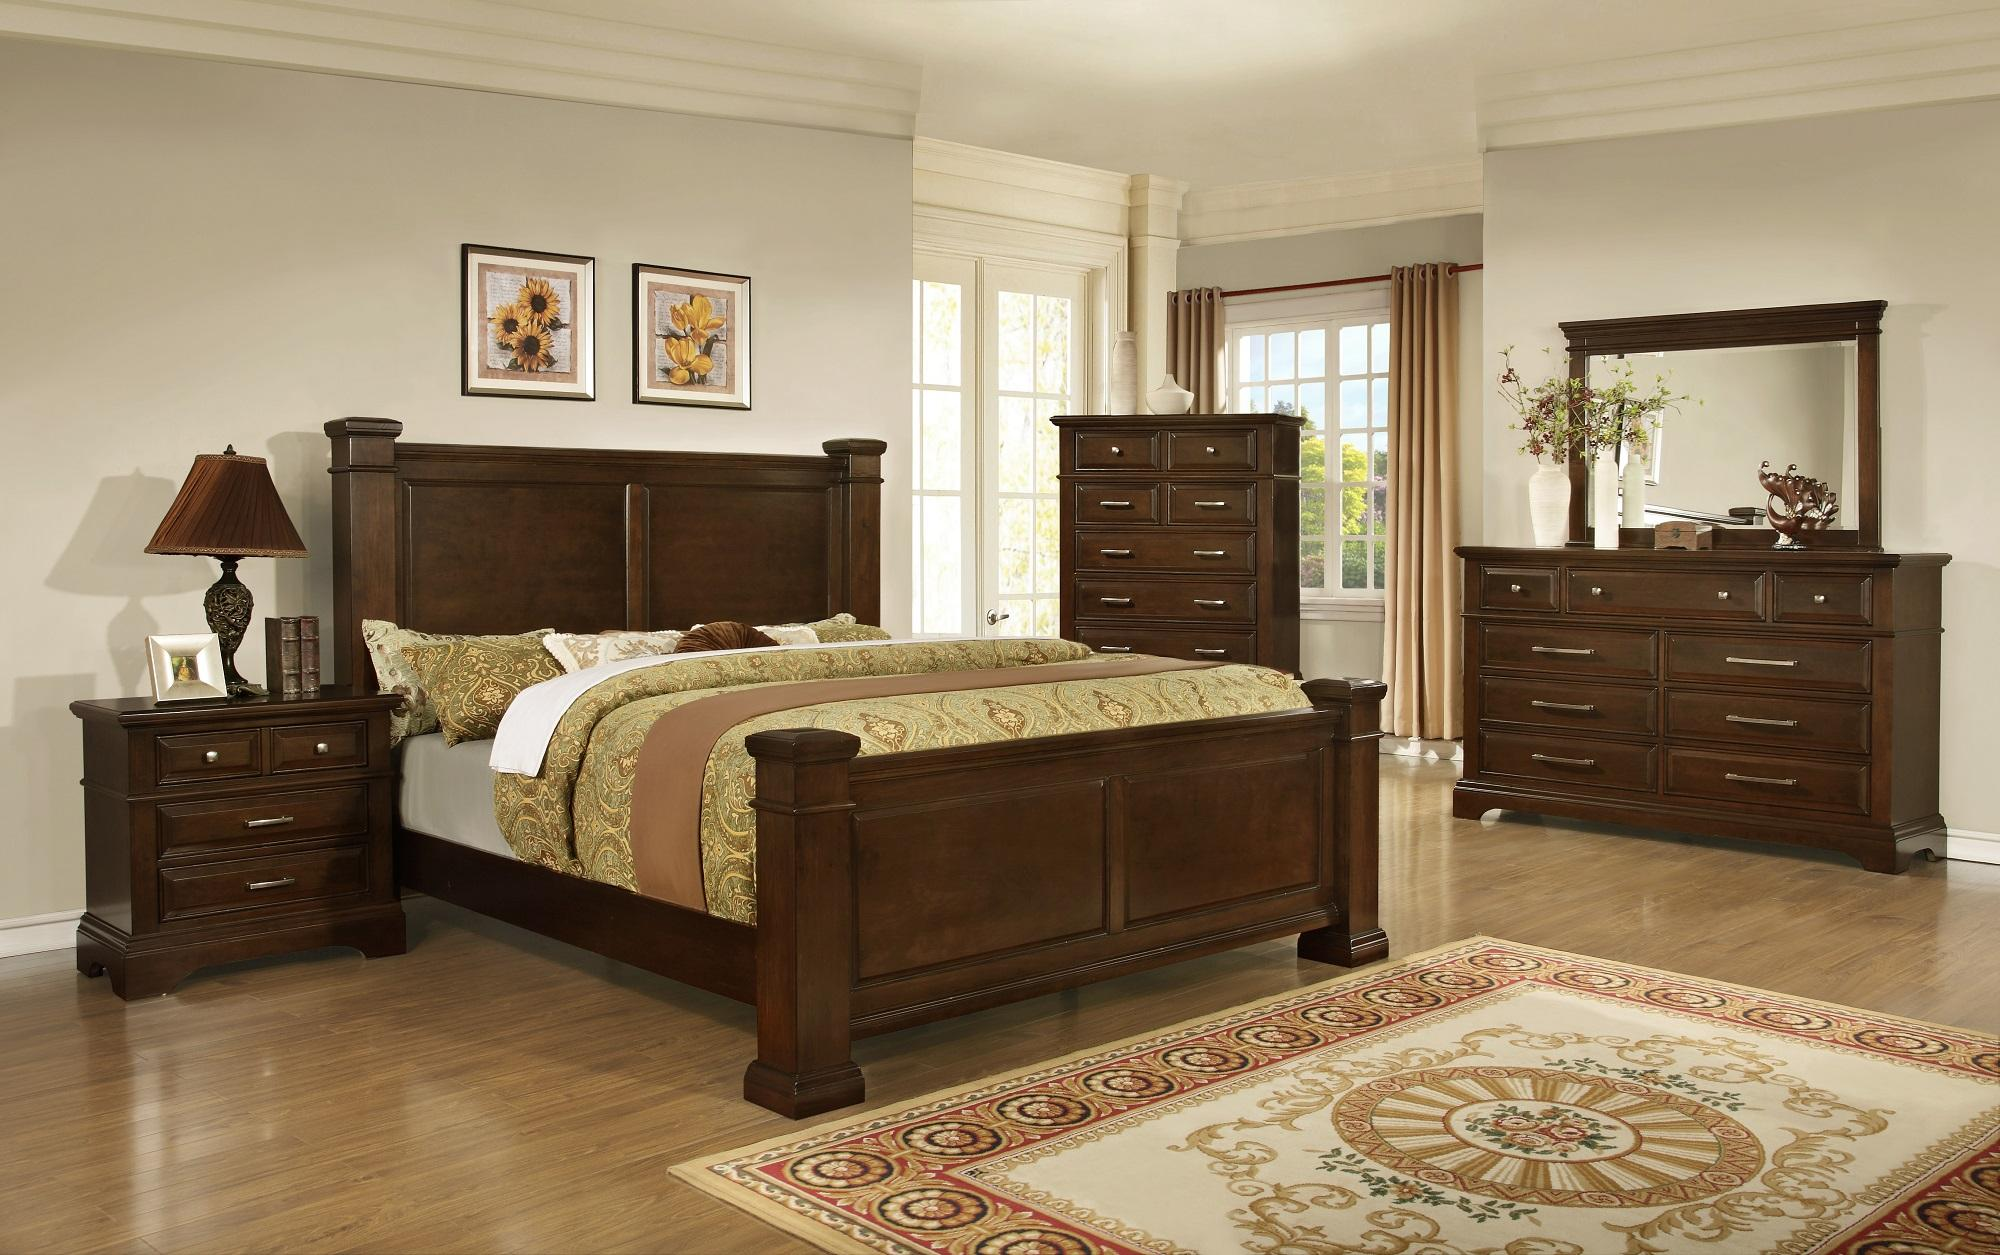 Ordinaire Lifestyle Timber Transitional Queen Headboard With Posts    BigFurnitureWebsite   Headboard